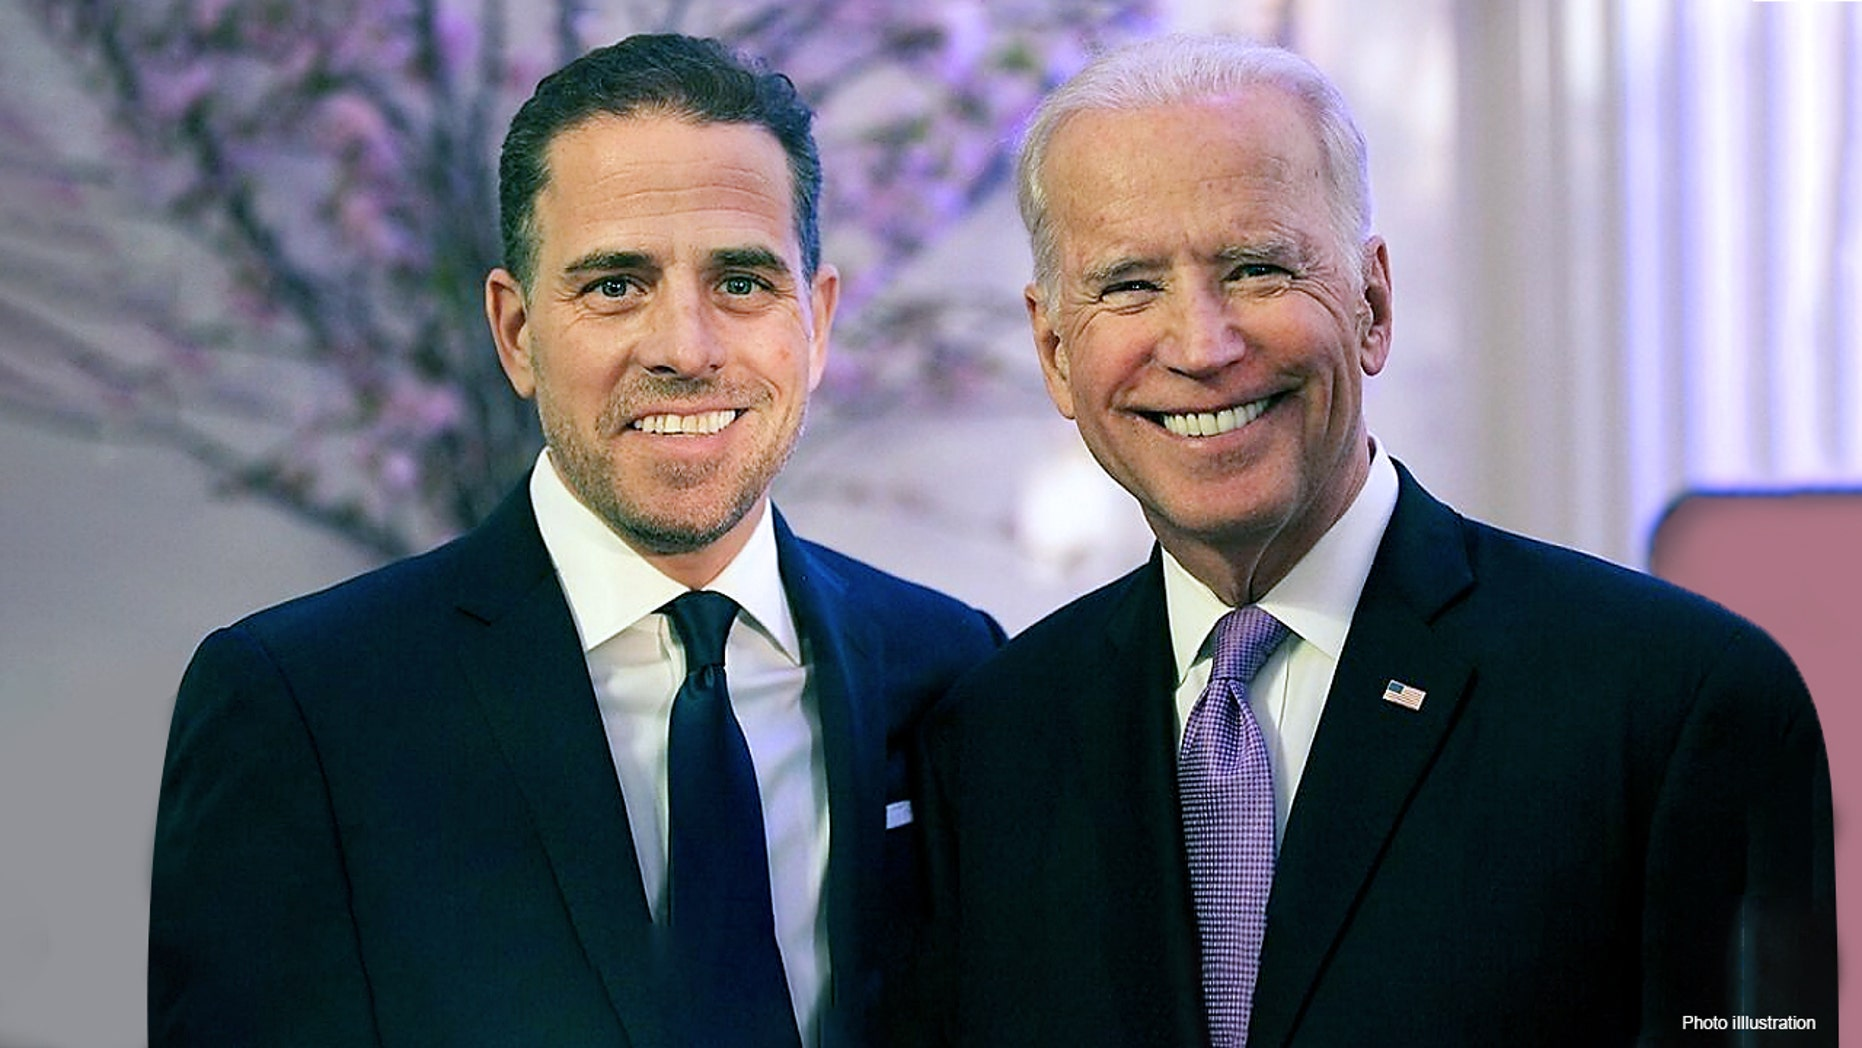 Hunter Biden 'tax affairs' under federal probe; links to China funds emerge, sources say